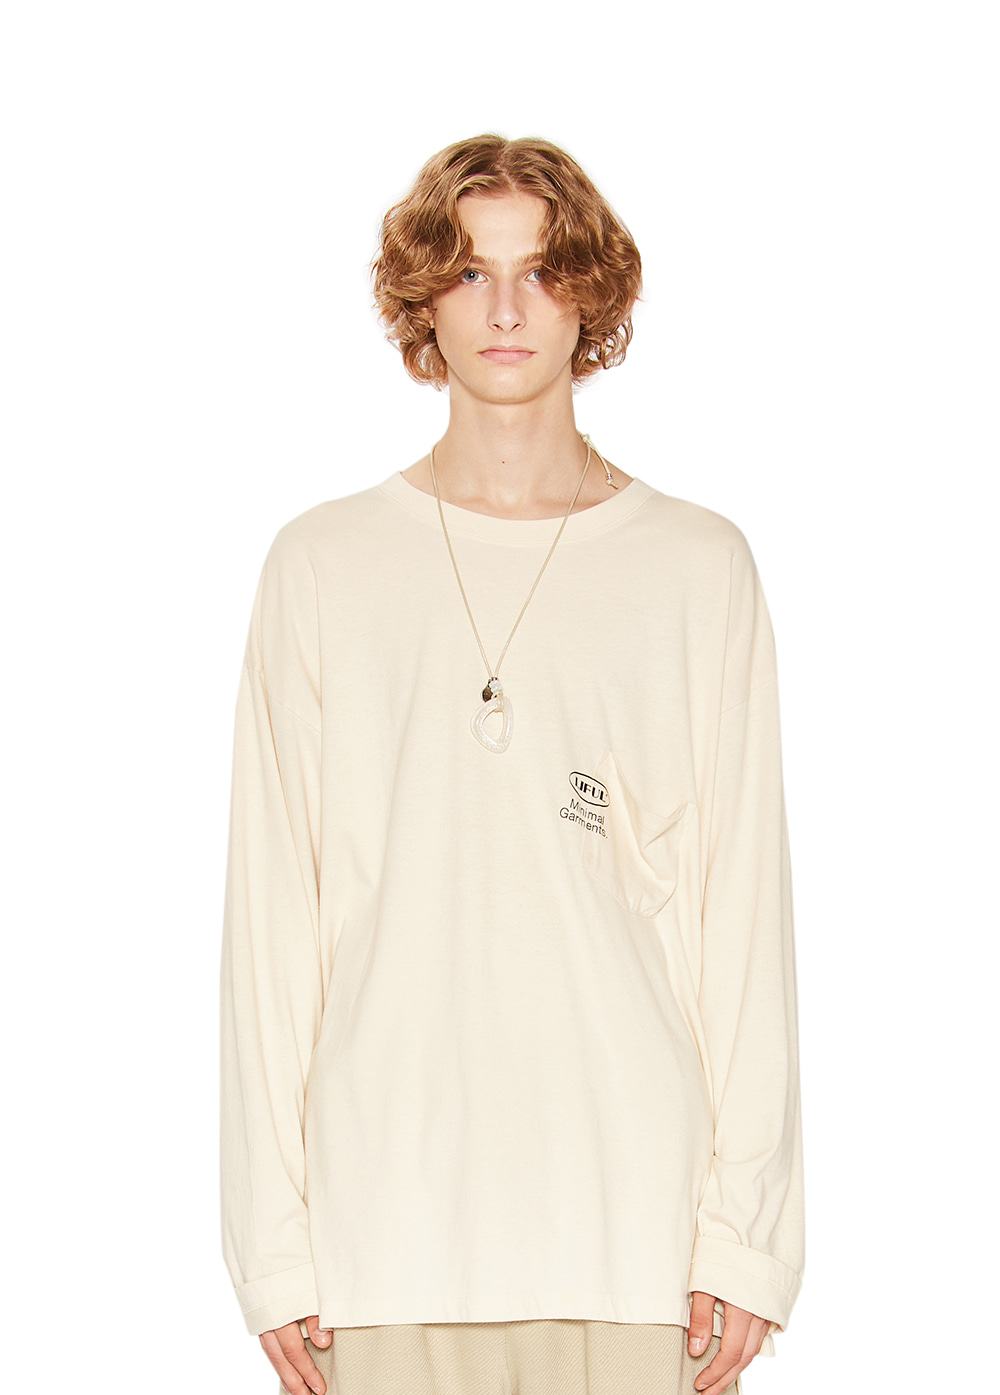 OVAL POCKET LONG SLEEVE TEE ivory